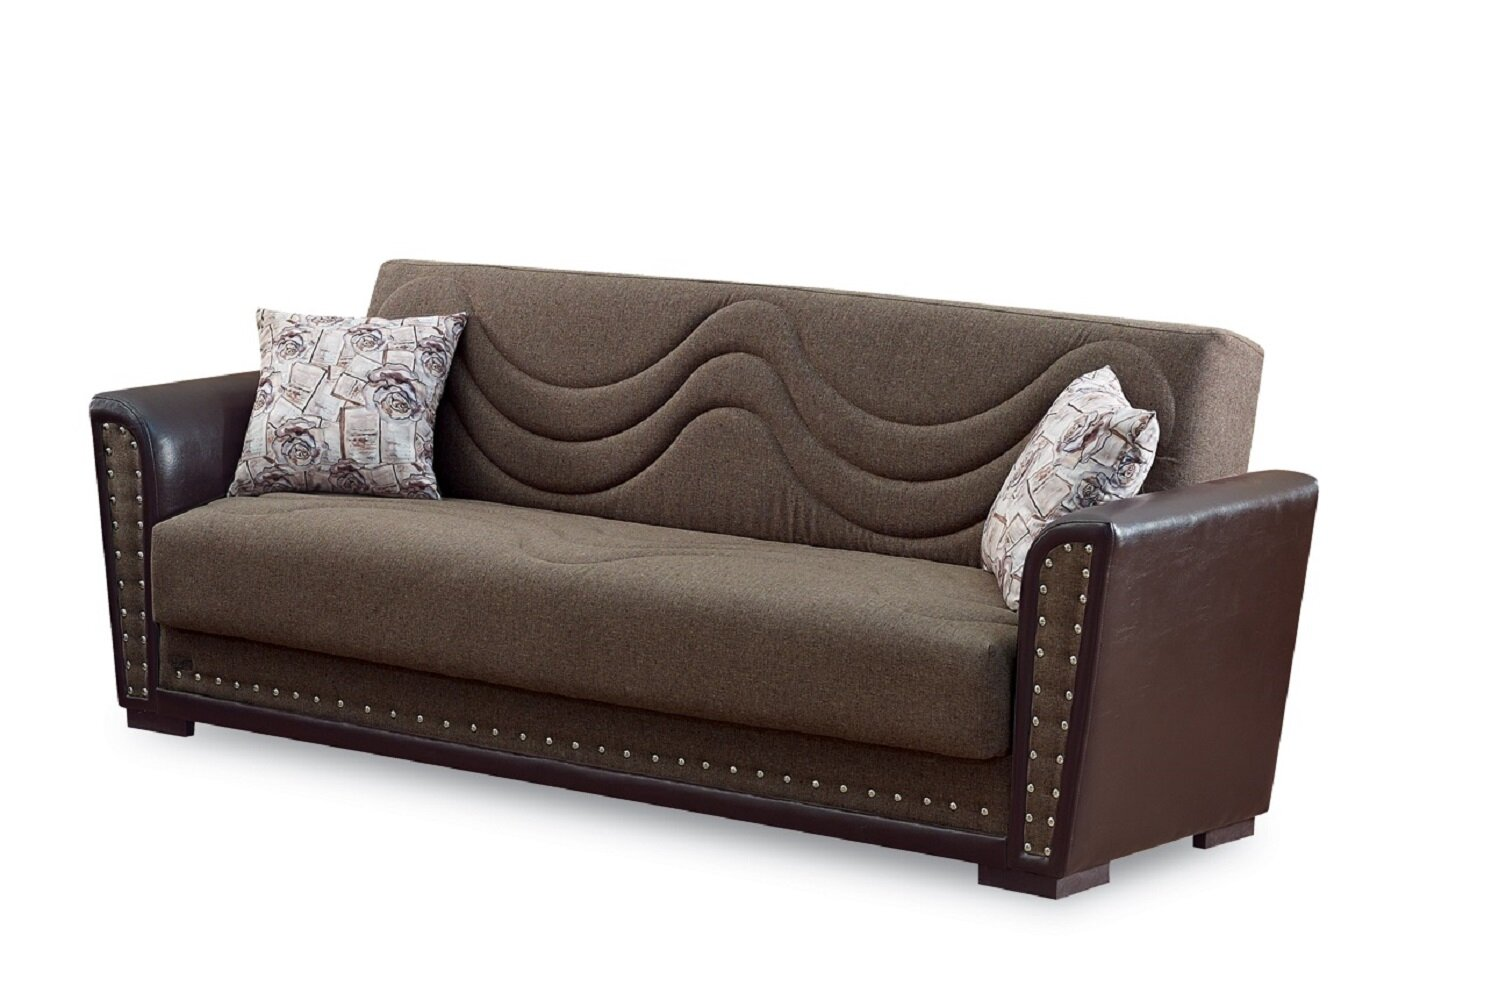 Beyan Toronto Convertible Sleeper Sofa Reviews Wayfair